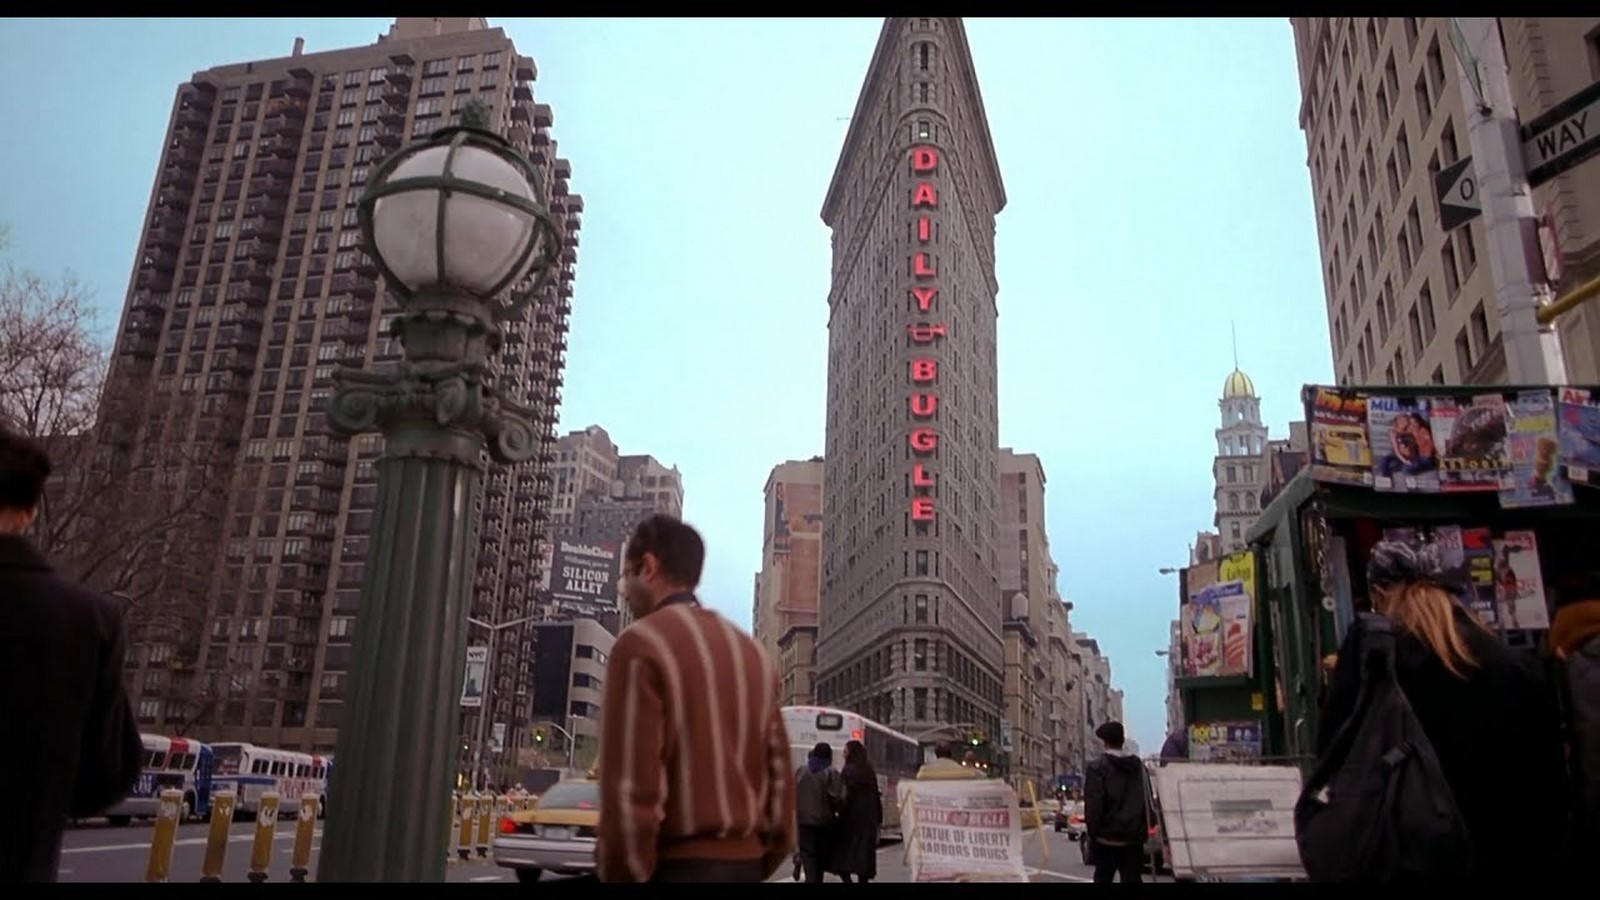 10 Things you did not know about The Flatiron Building - Sheet12